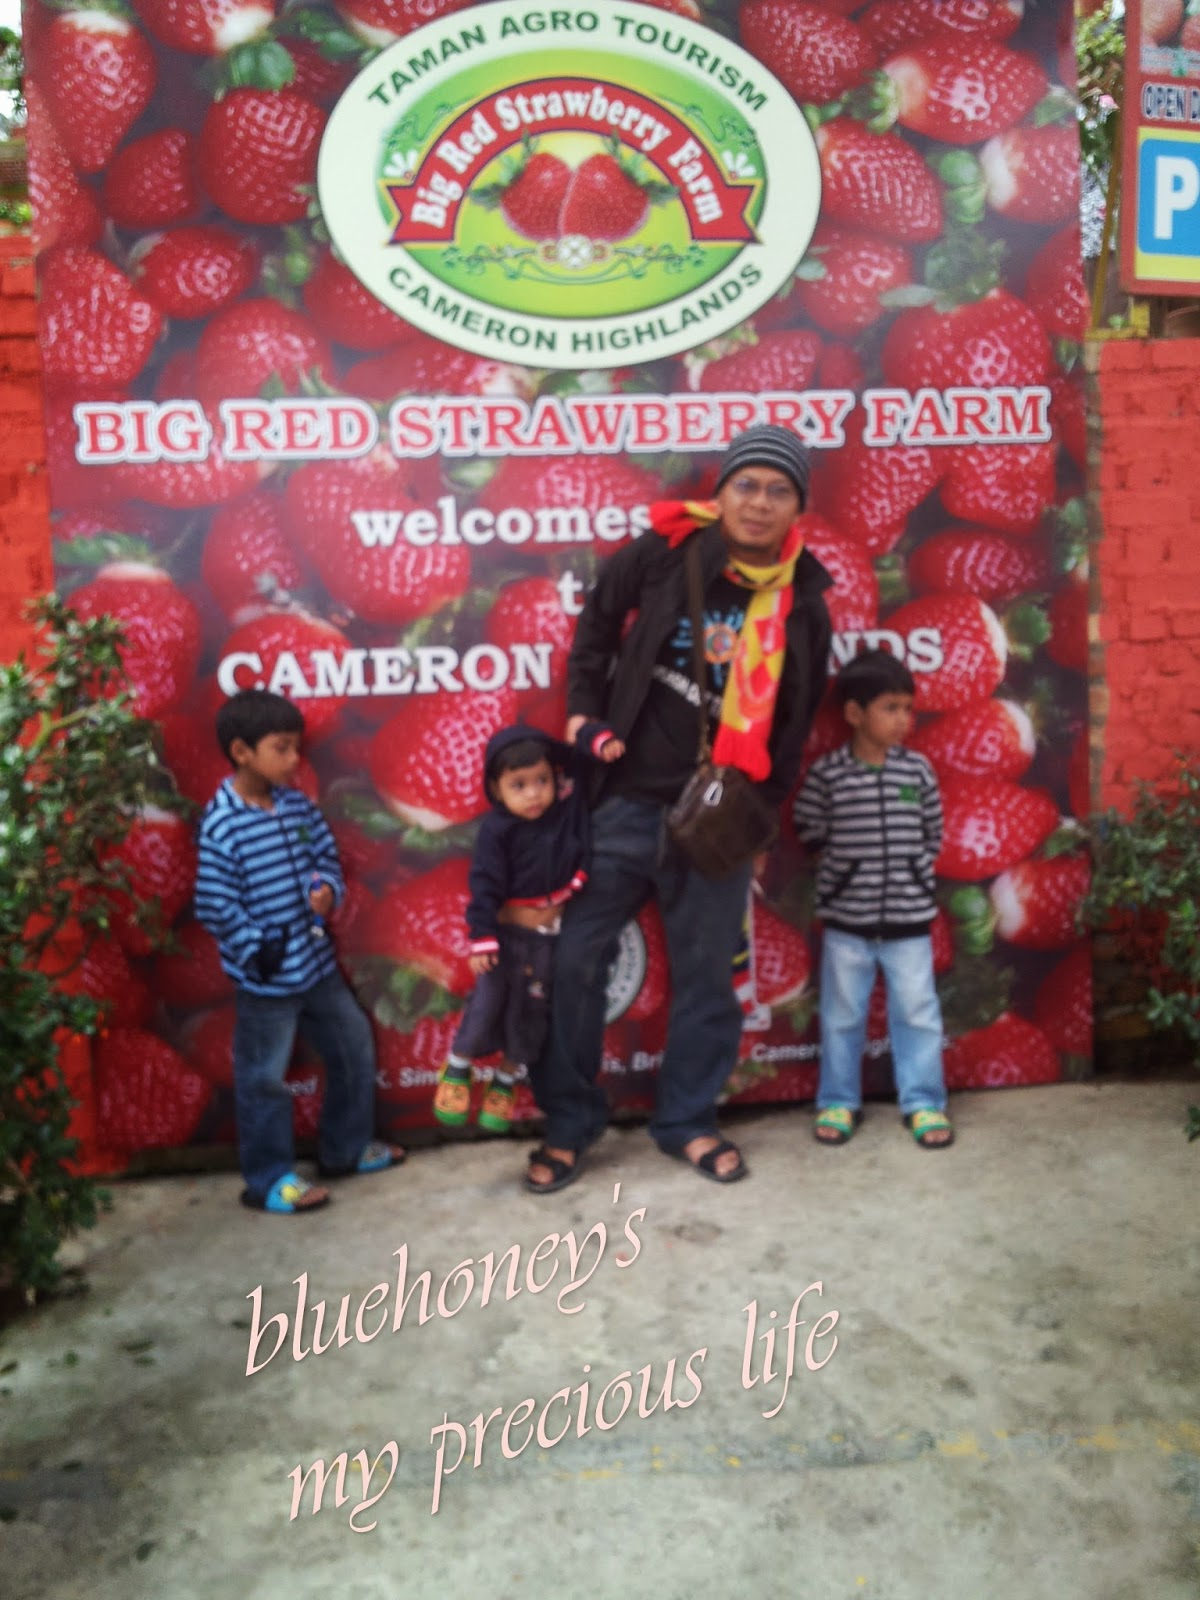 CAMERON HIGHLANDS PART II